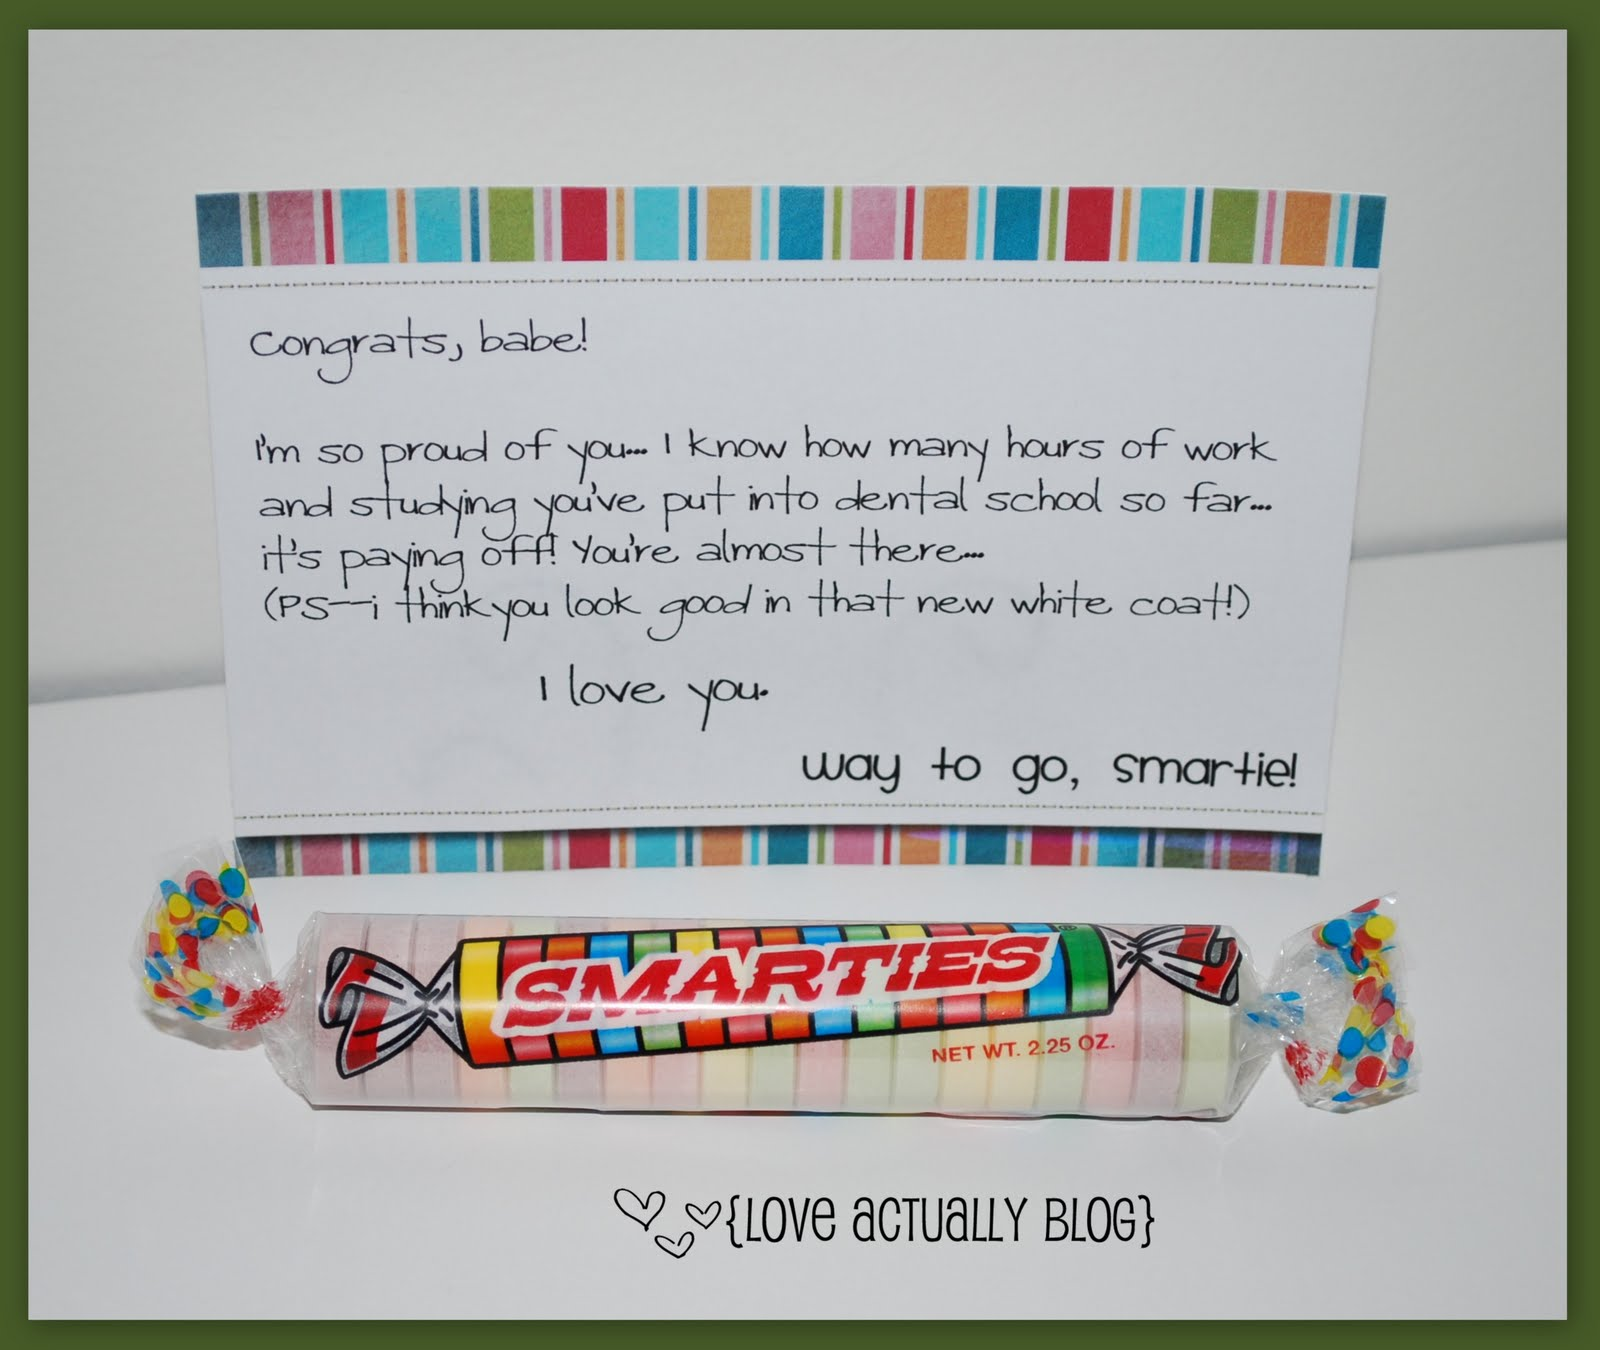 Love, Actually: March 2010 Smarties Test